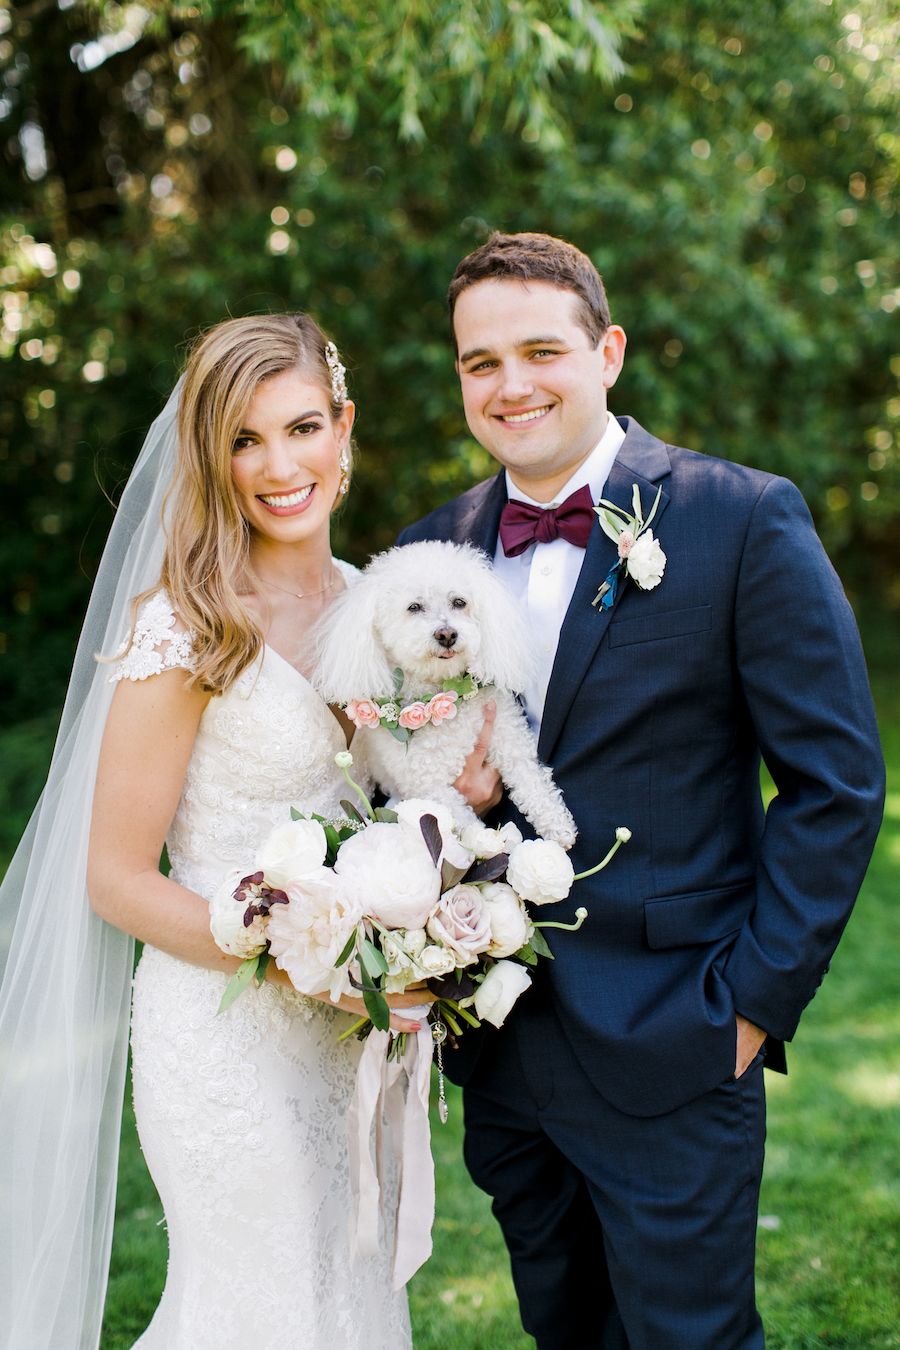 A bride, groom and their dog